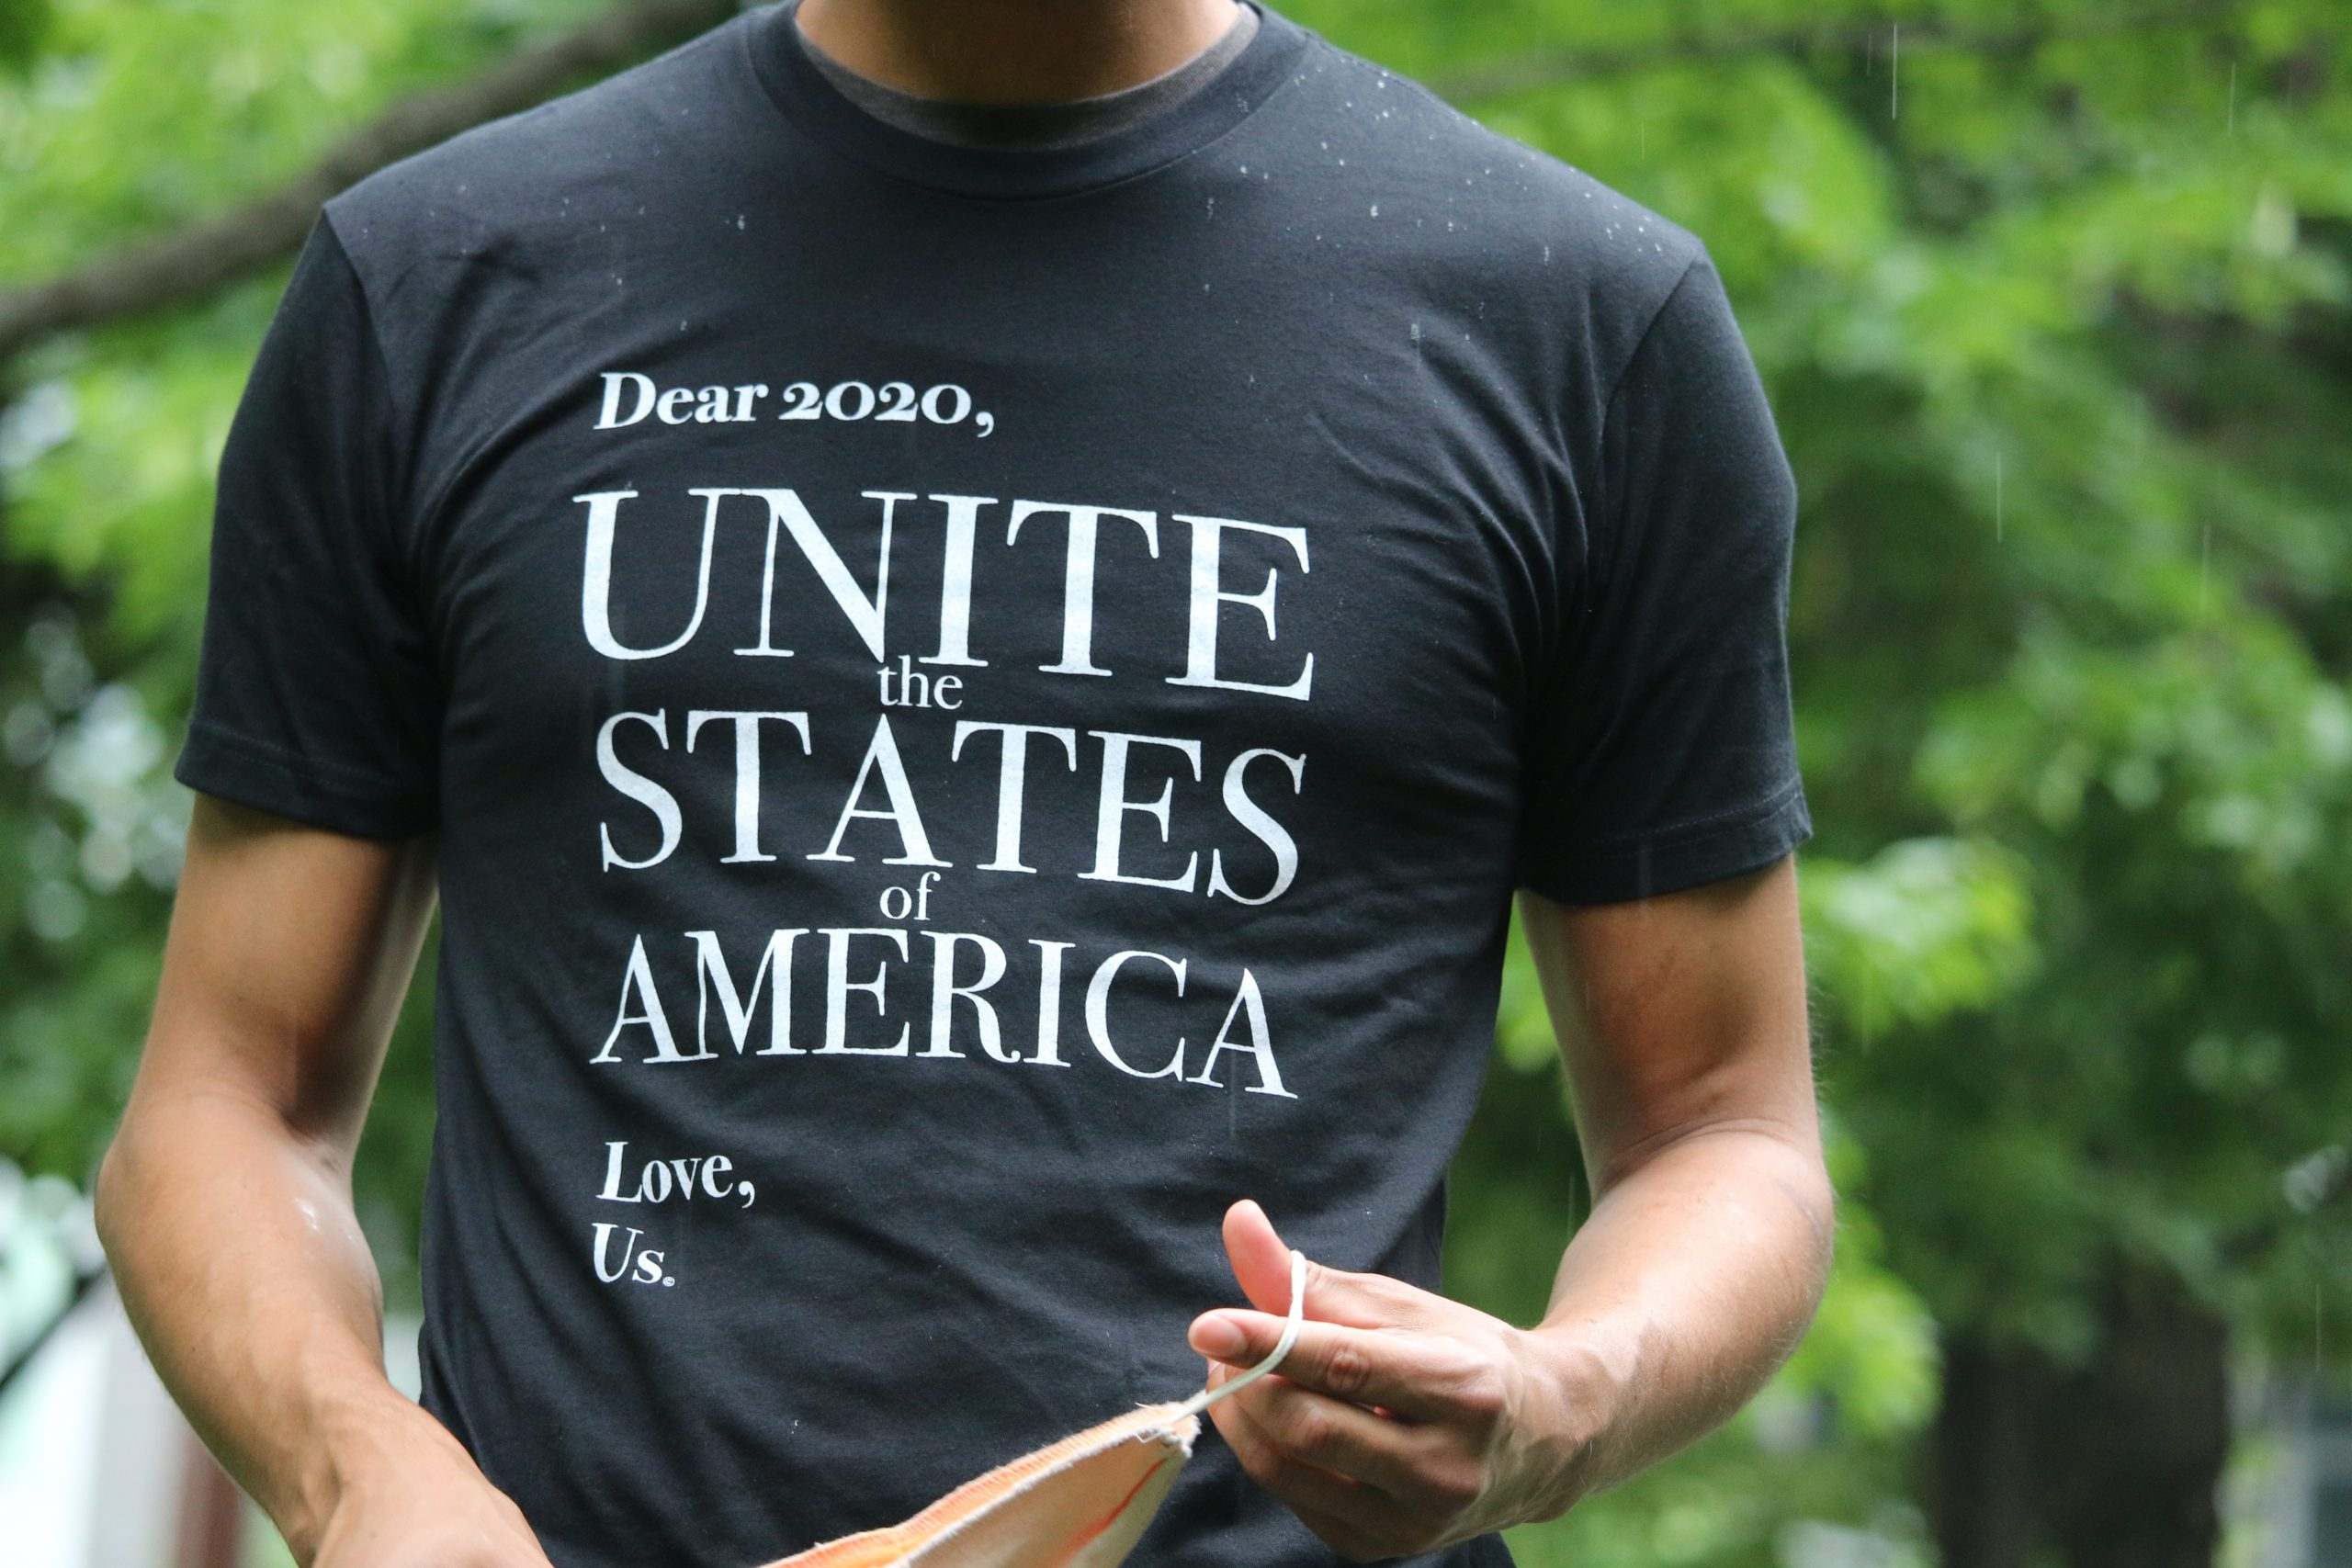 """Andy Frye's bipartisan T-shirt is a """"love letter"""" to elected officials—and a plea"""